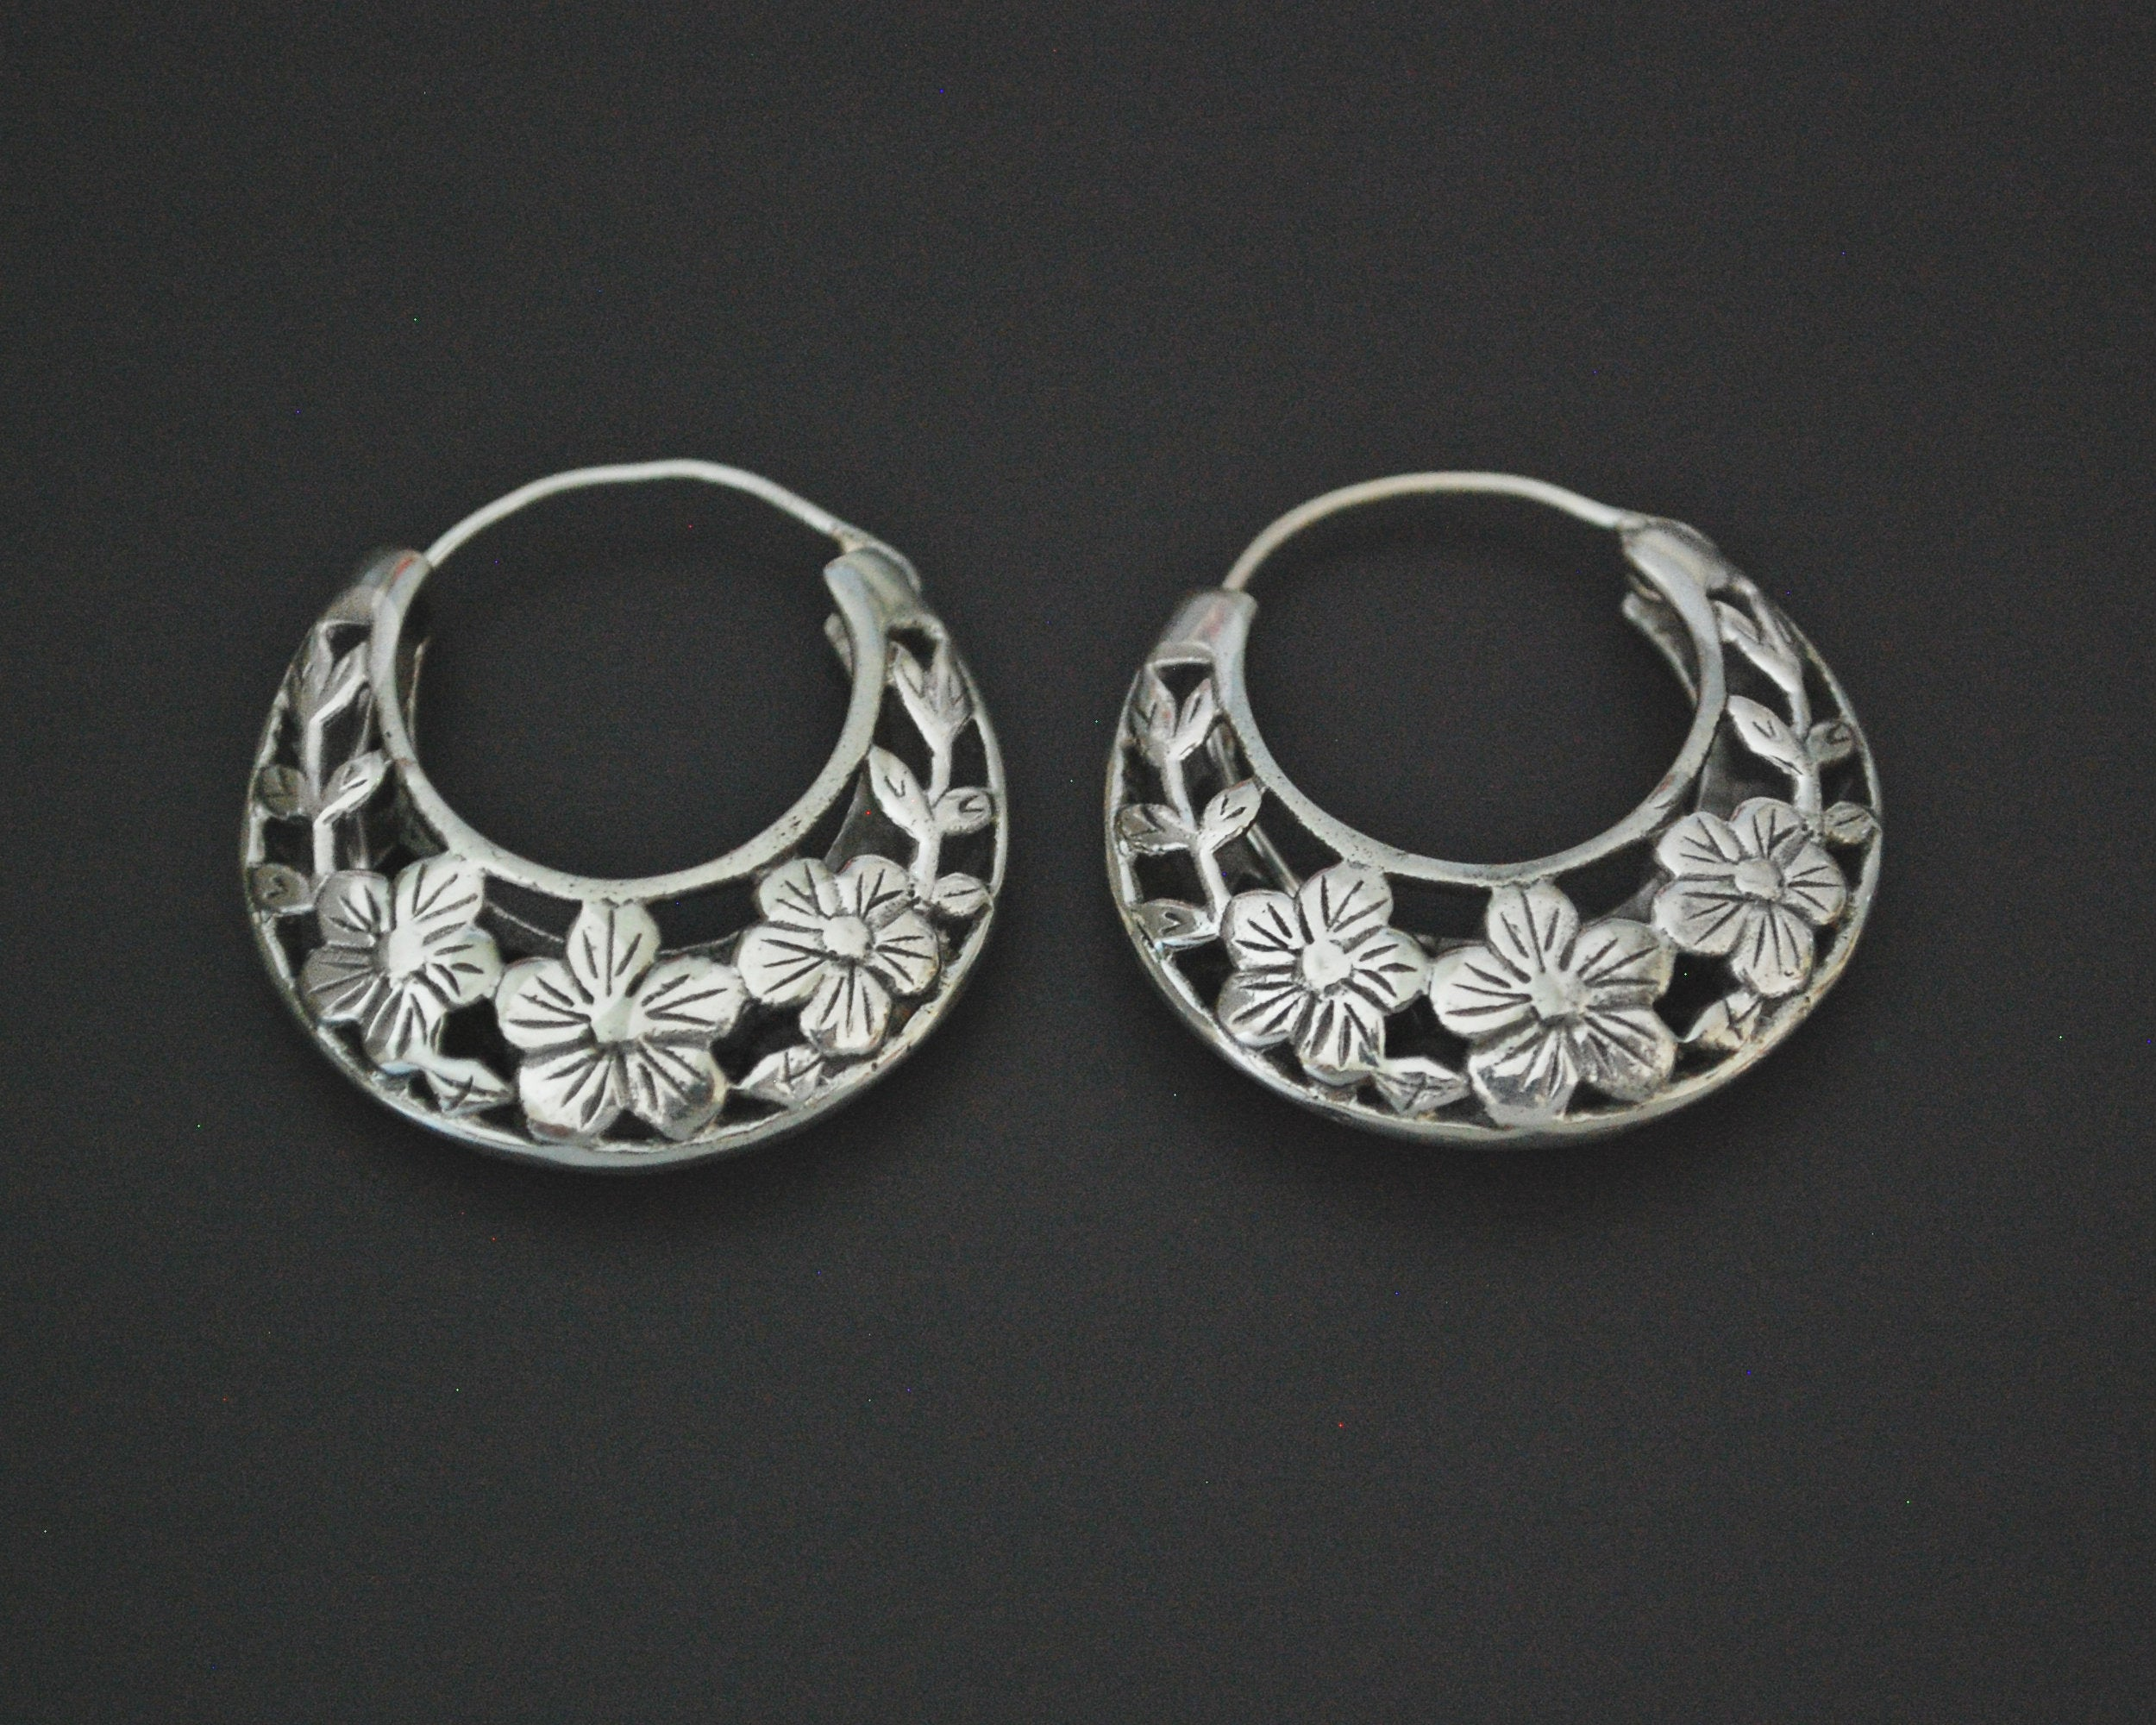 Ethnic Hoop Earrings with Flower Cut Out Design